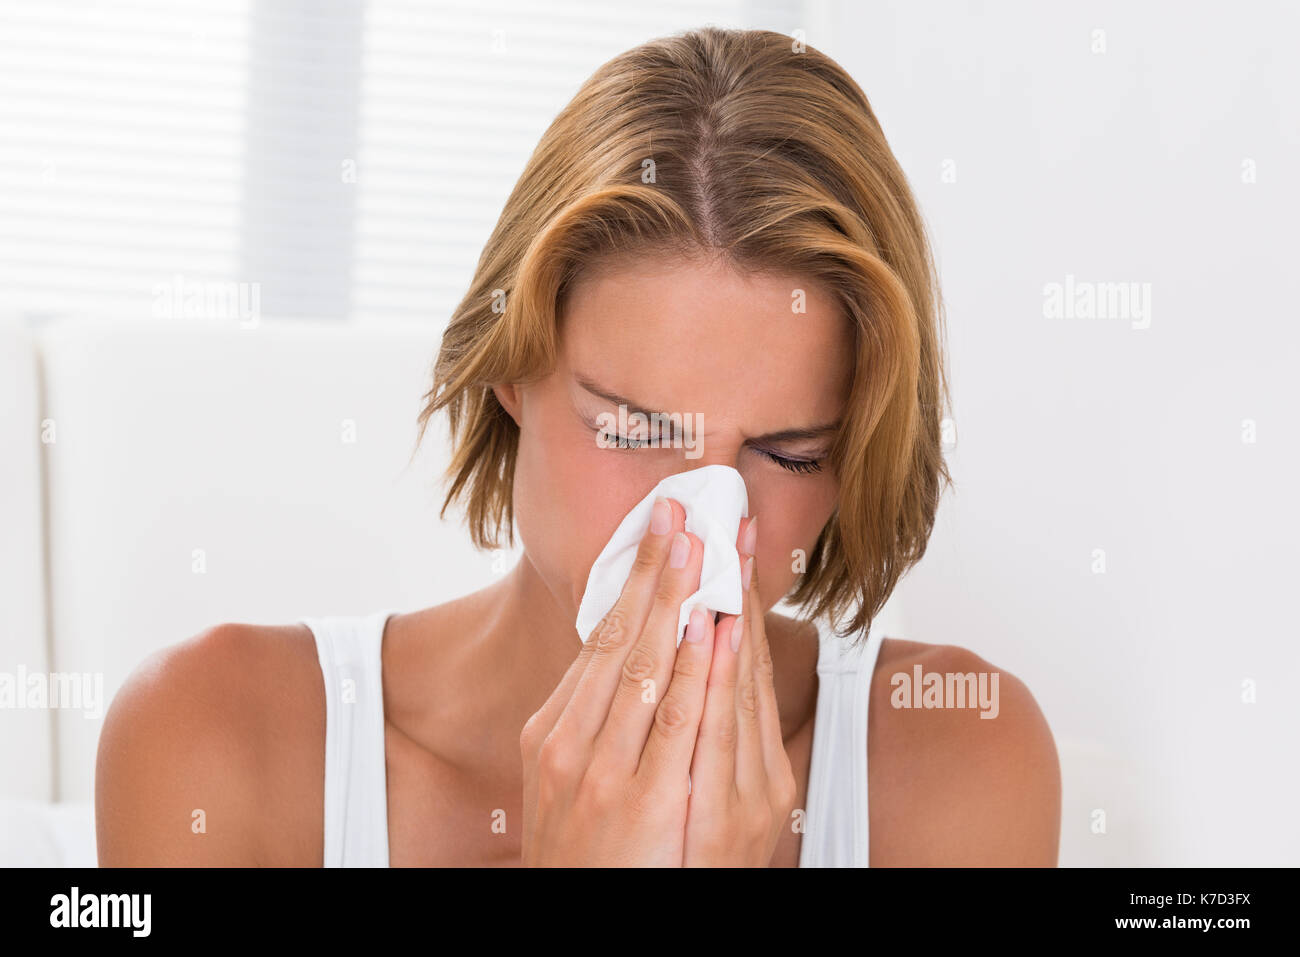 Portrait Of Young Woman Blowing Nose In Tissue Paper - Stock Image